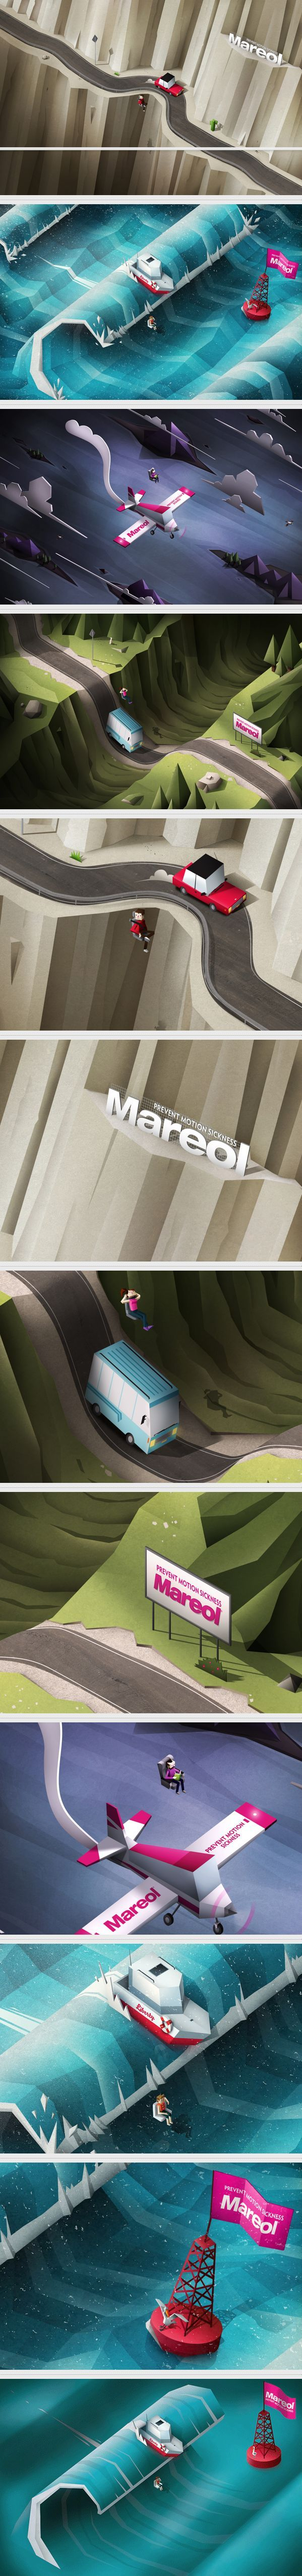 Amazing low poly stylised scenes. Very cool from http://www.behance.net/gallery/Mareol/5303147